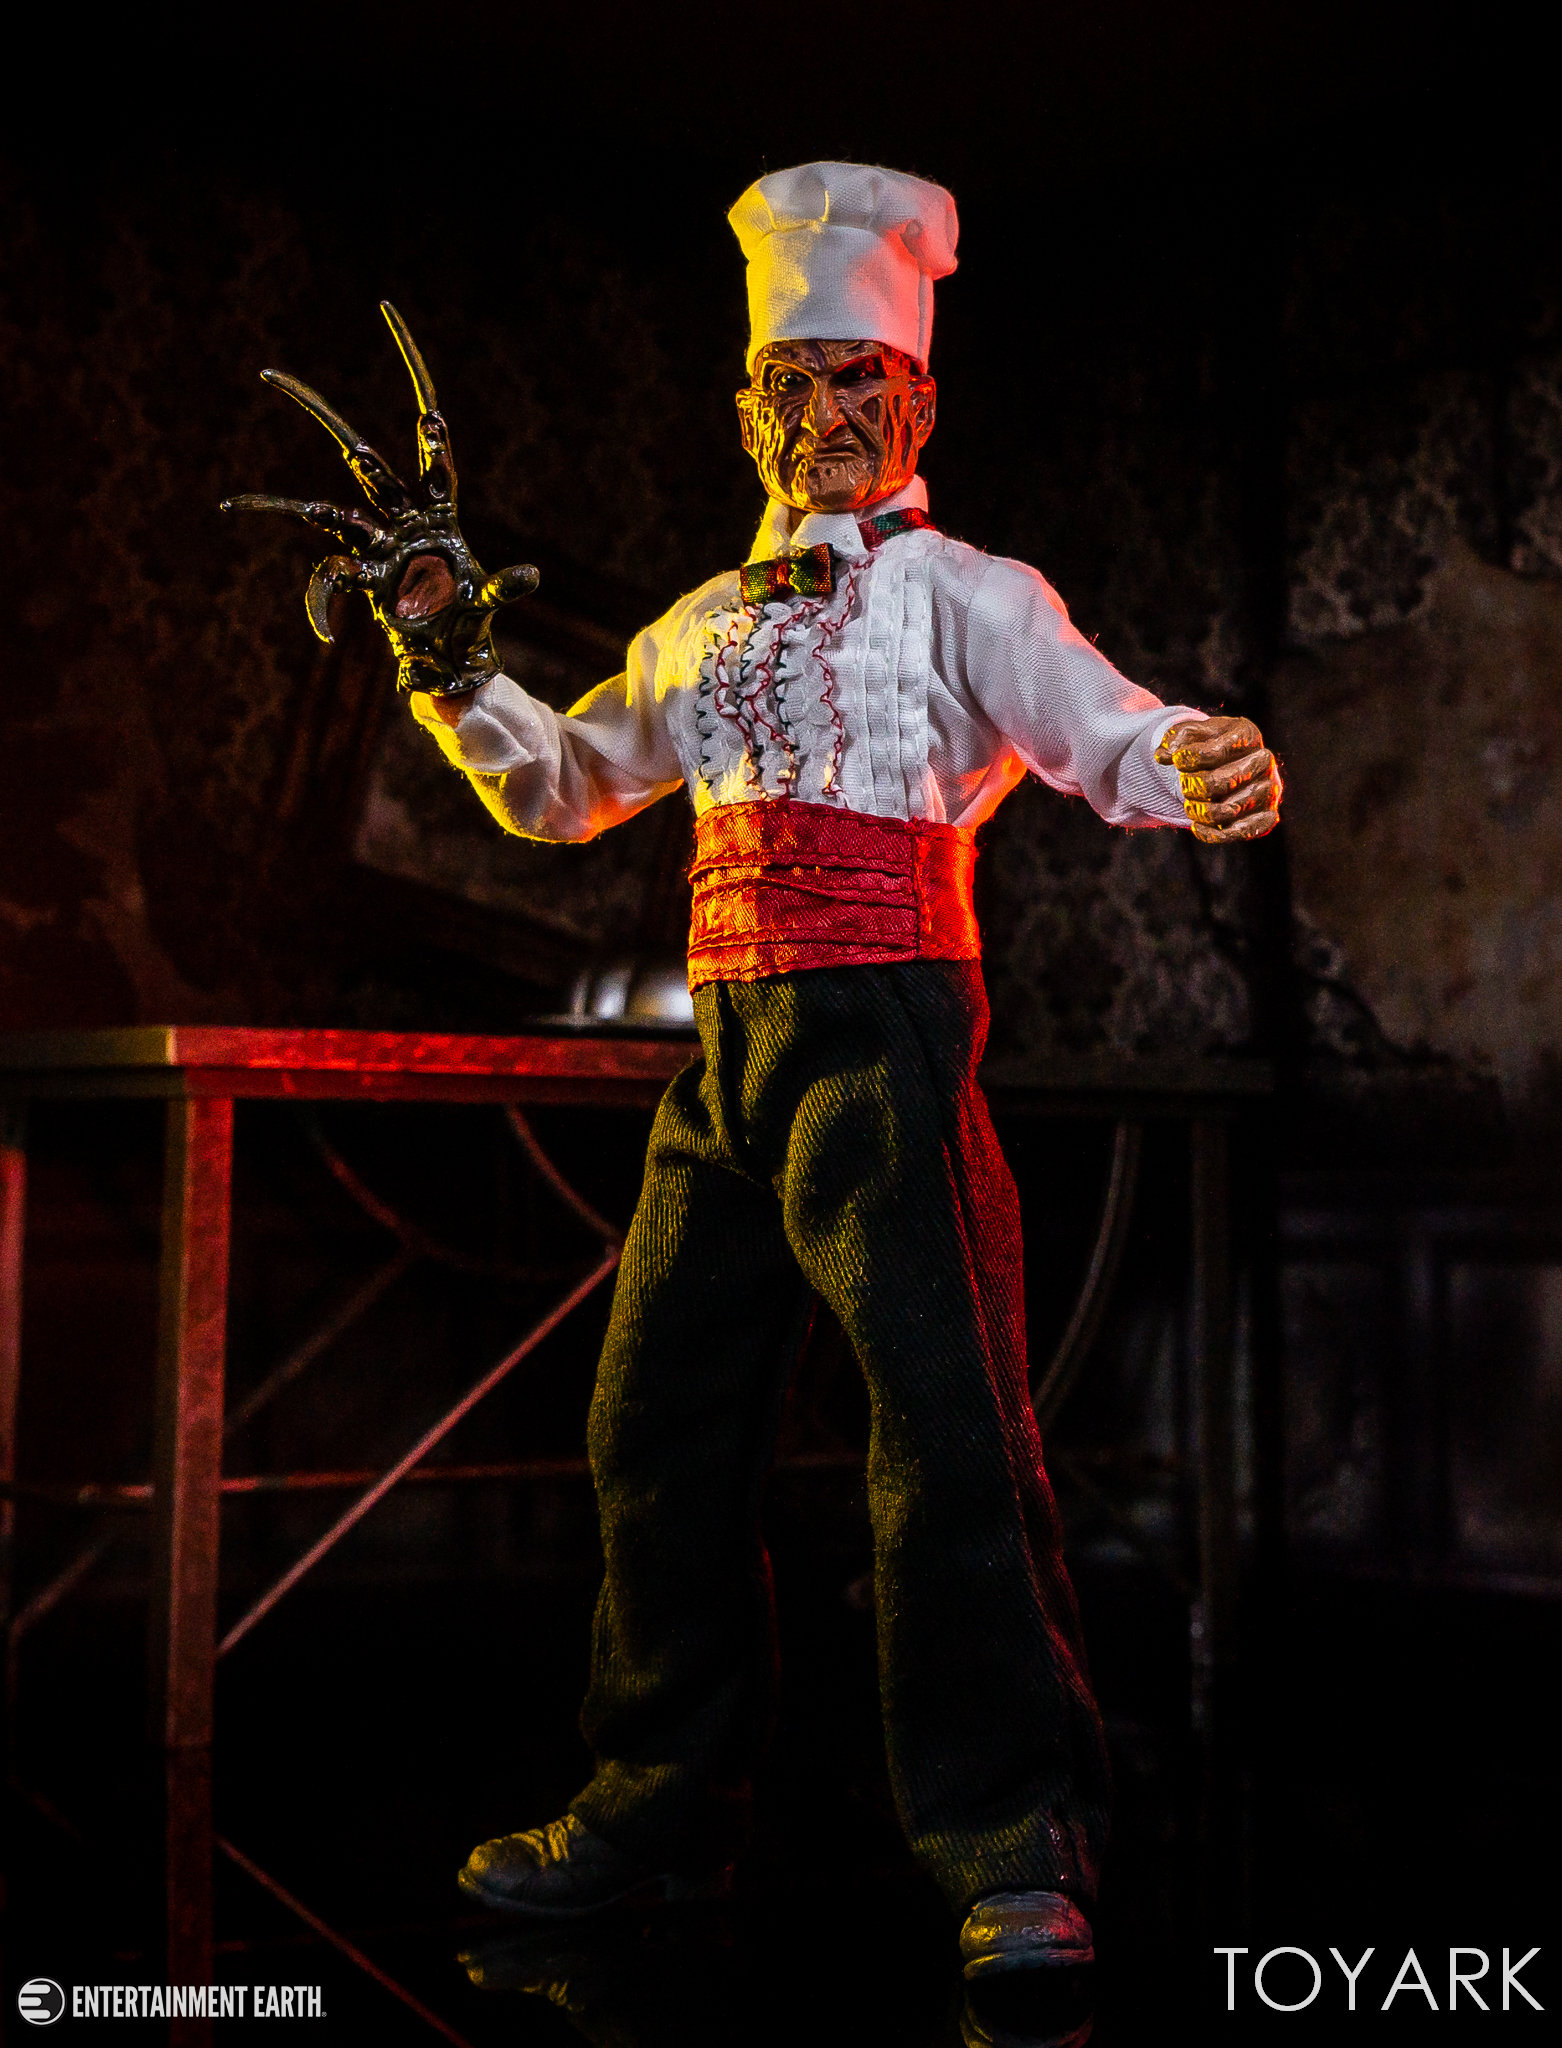 https://news.toyark.com/wp-content/uploads/sites/4/2018/10/Chef-Freddy-NECA-009.jpg